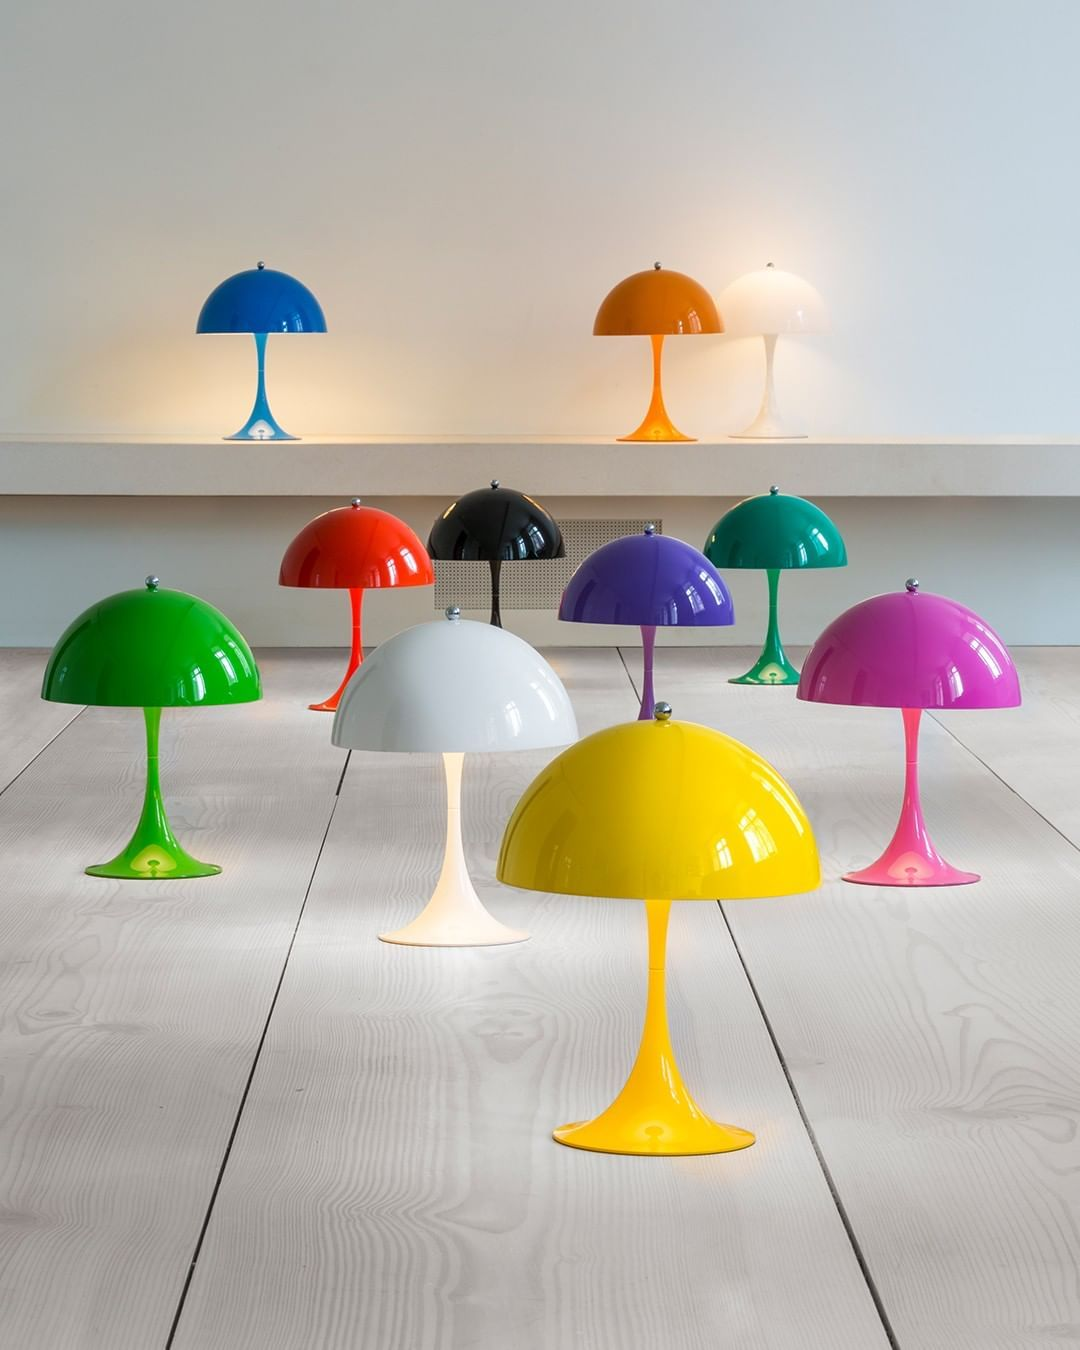 Louis Poulsen On Instagram Treat Your Home With A Splash Of Colour Panthella Mini Designed By Verner Panton Mini Table Lamps Lamp Design Mini Lamp